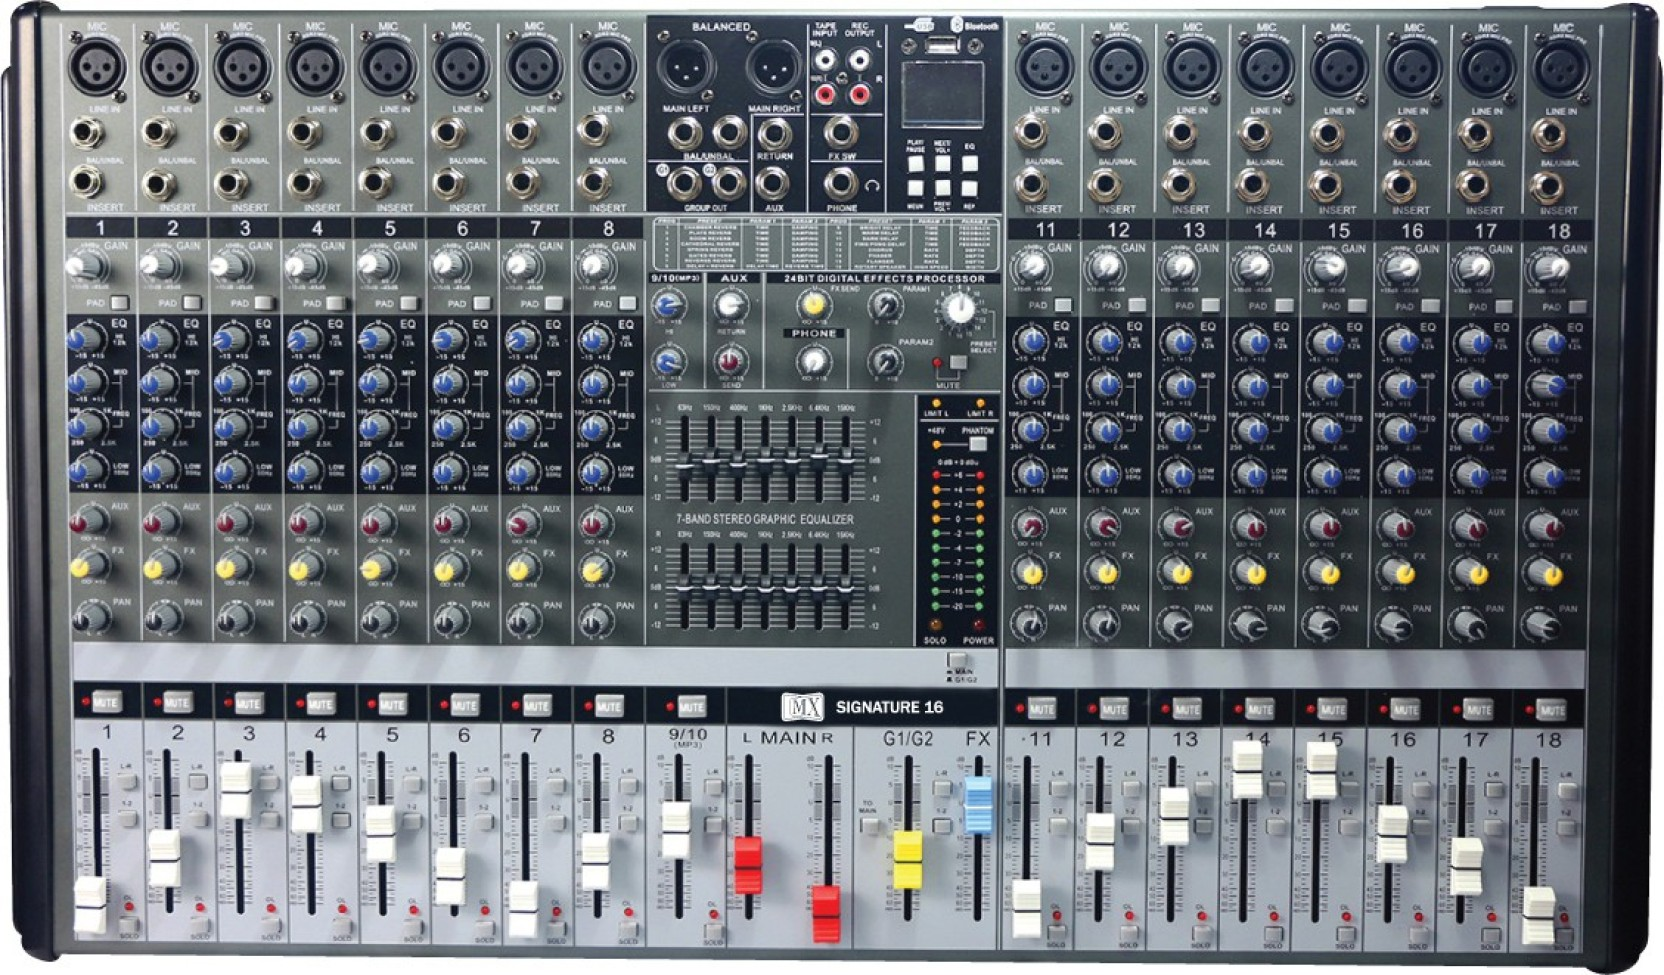 Mx Live Audio Mixer 16 Channel Professional With Usb 3 Add To Cart